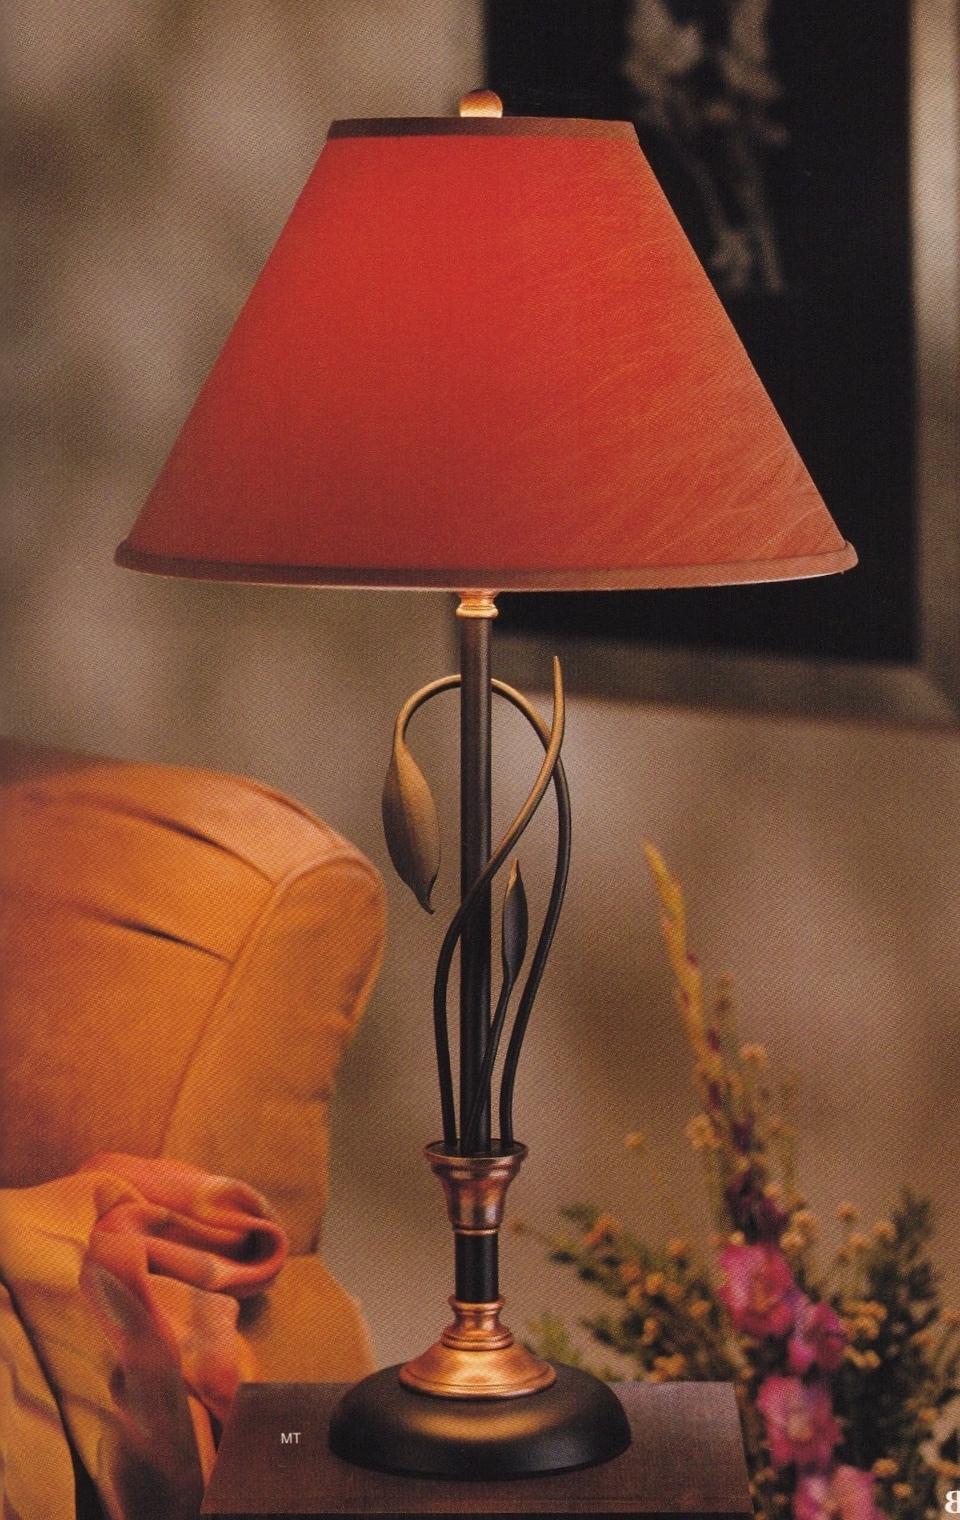 Wrought Iron Living Room Table Lamps Intended For Well Known Black Wrought Iron Table Lamp Remarkable Shades Argos Parts Kits Uk (View 10 of 20)